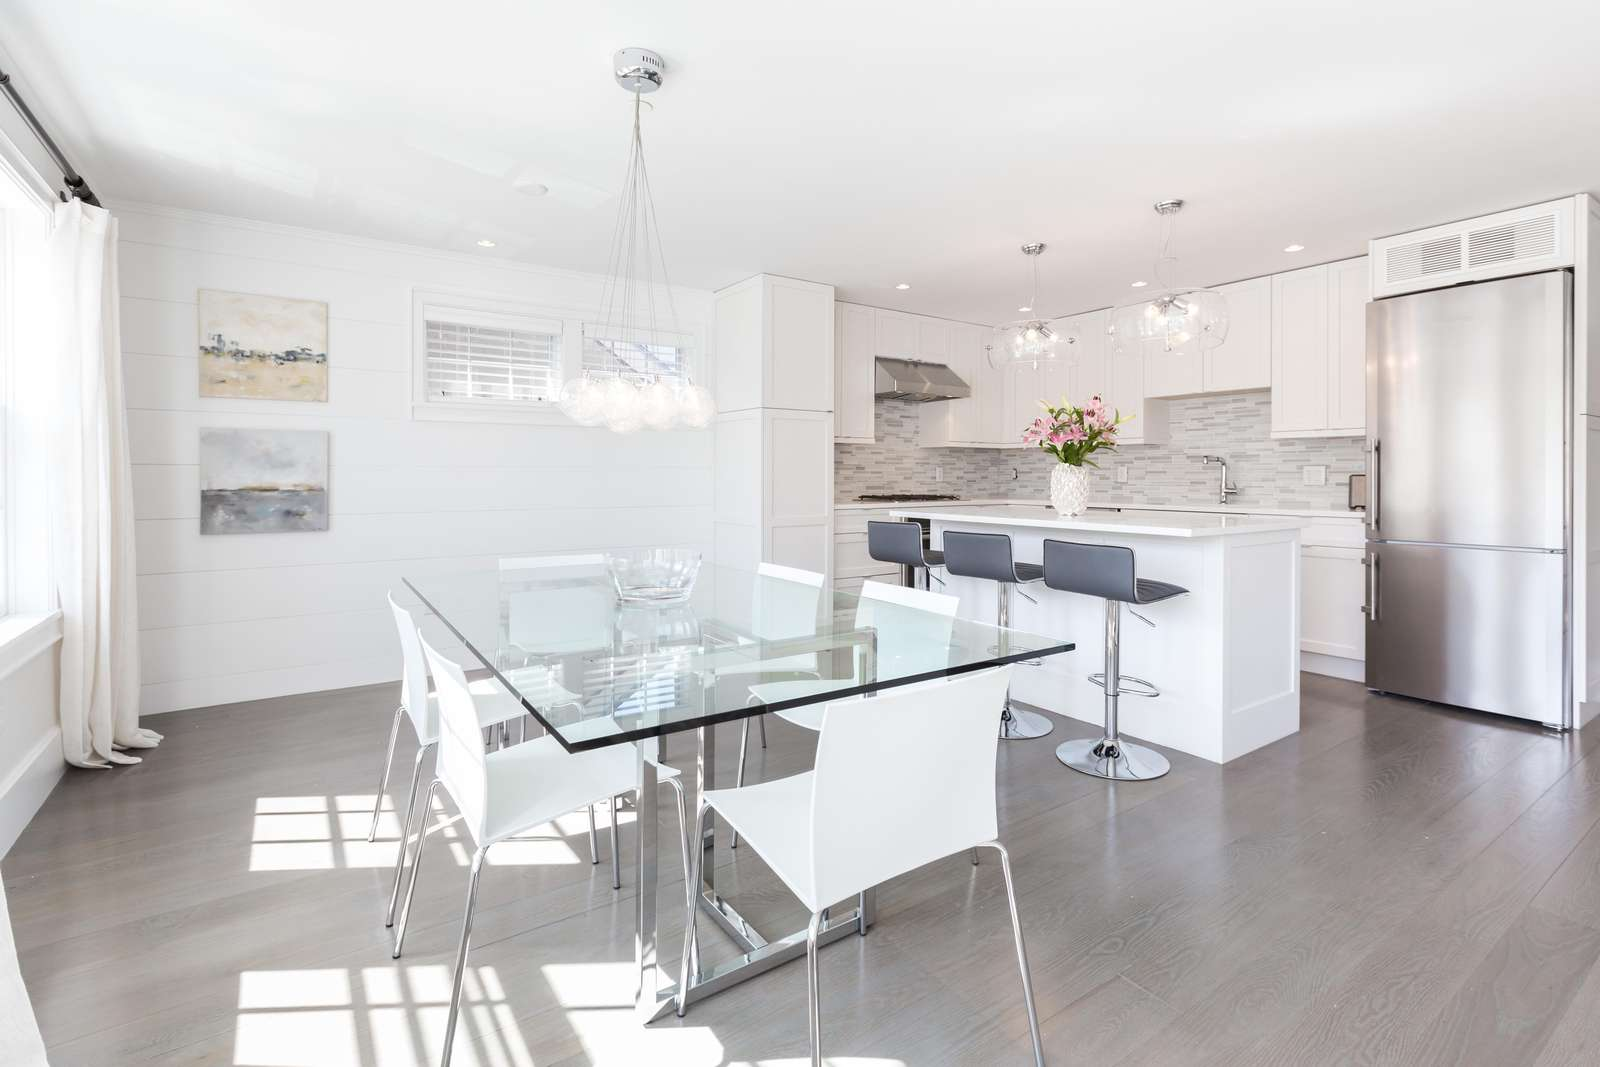 Fully equipped kitchen.  Elegant glass dining room table, seats 6